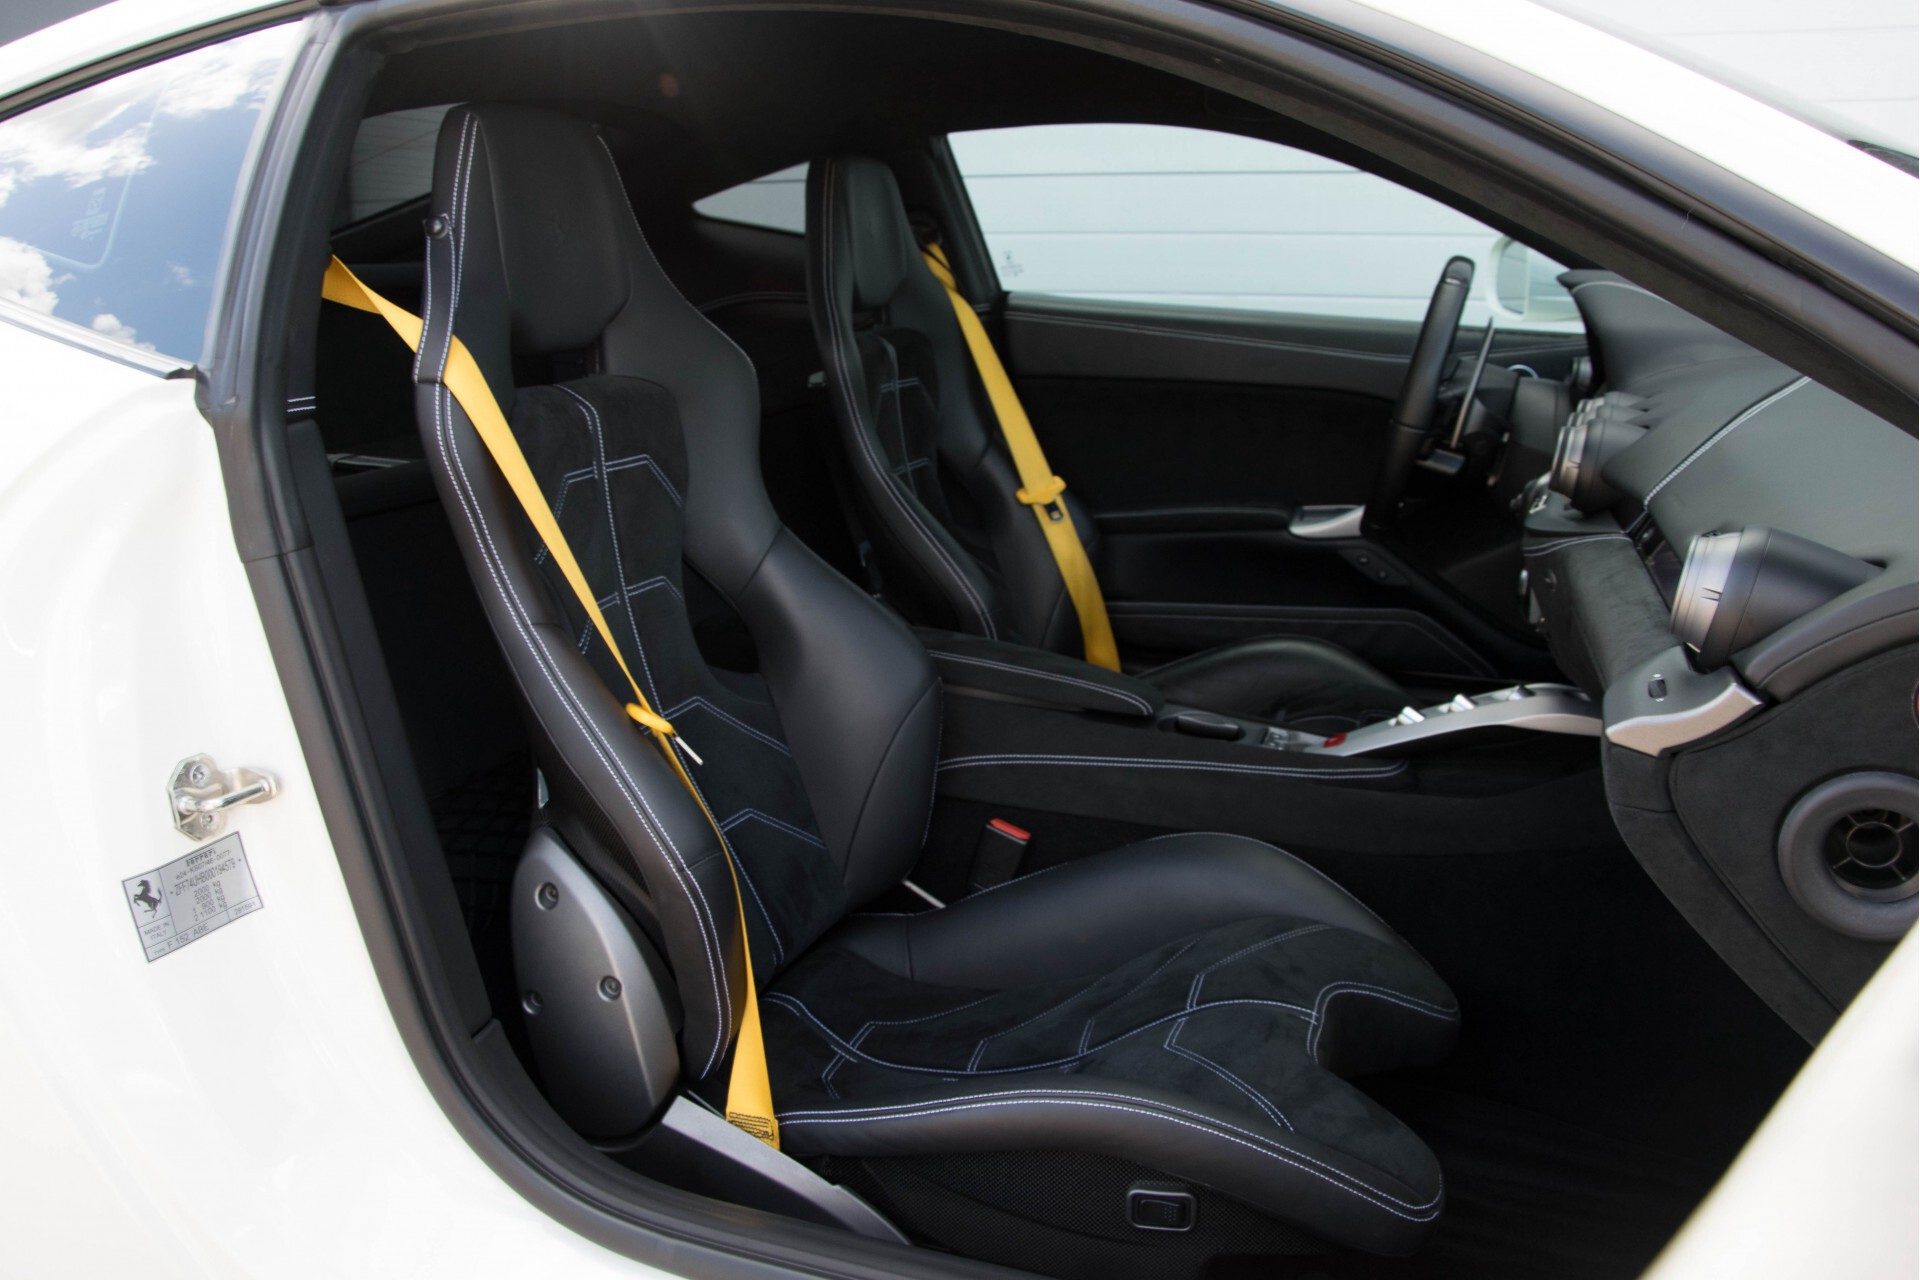 Ferrari F12 6.3 Berlinetta Capristo/Carbonseats/Led/Passenger Display Aut7 Foto 3